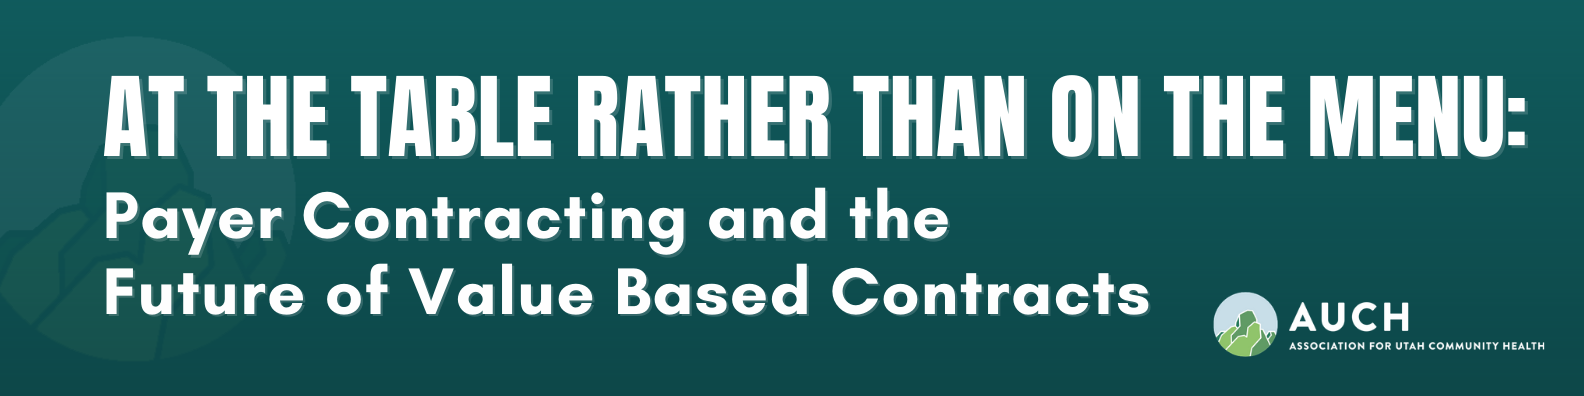 Payer Contracting and the Future of Value Based Contracts